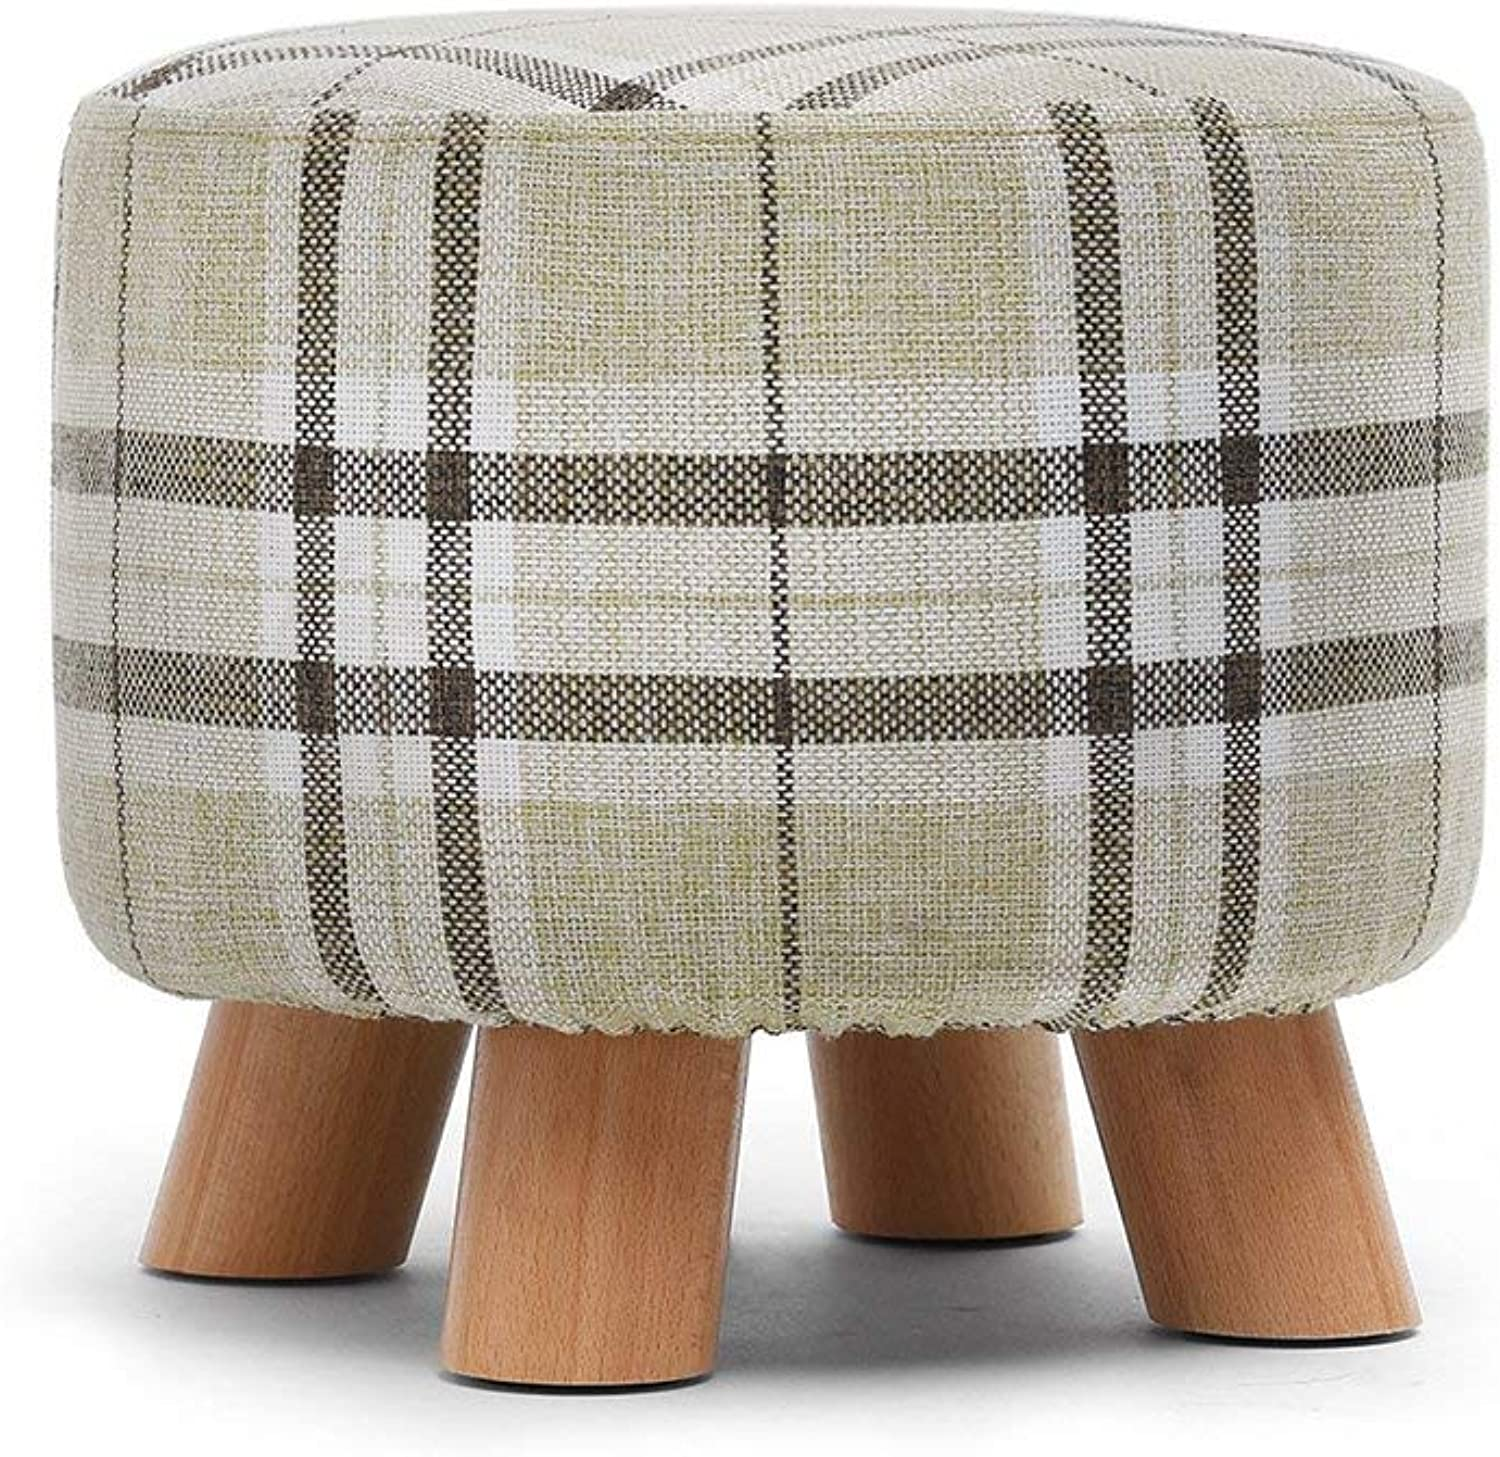 GJD Change shoes Stool Fashion Small Stool Solid Wood Stool Fabric Sofa Stool Stool - Small Stool (color   D)